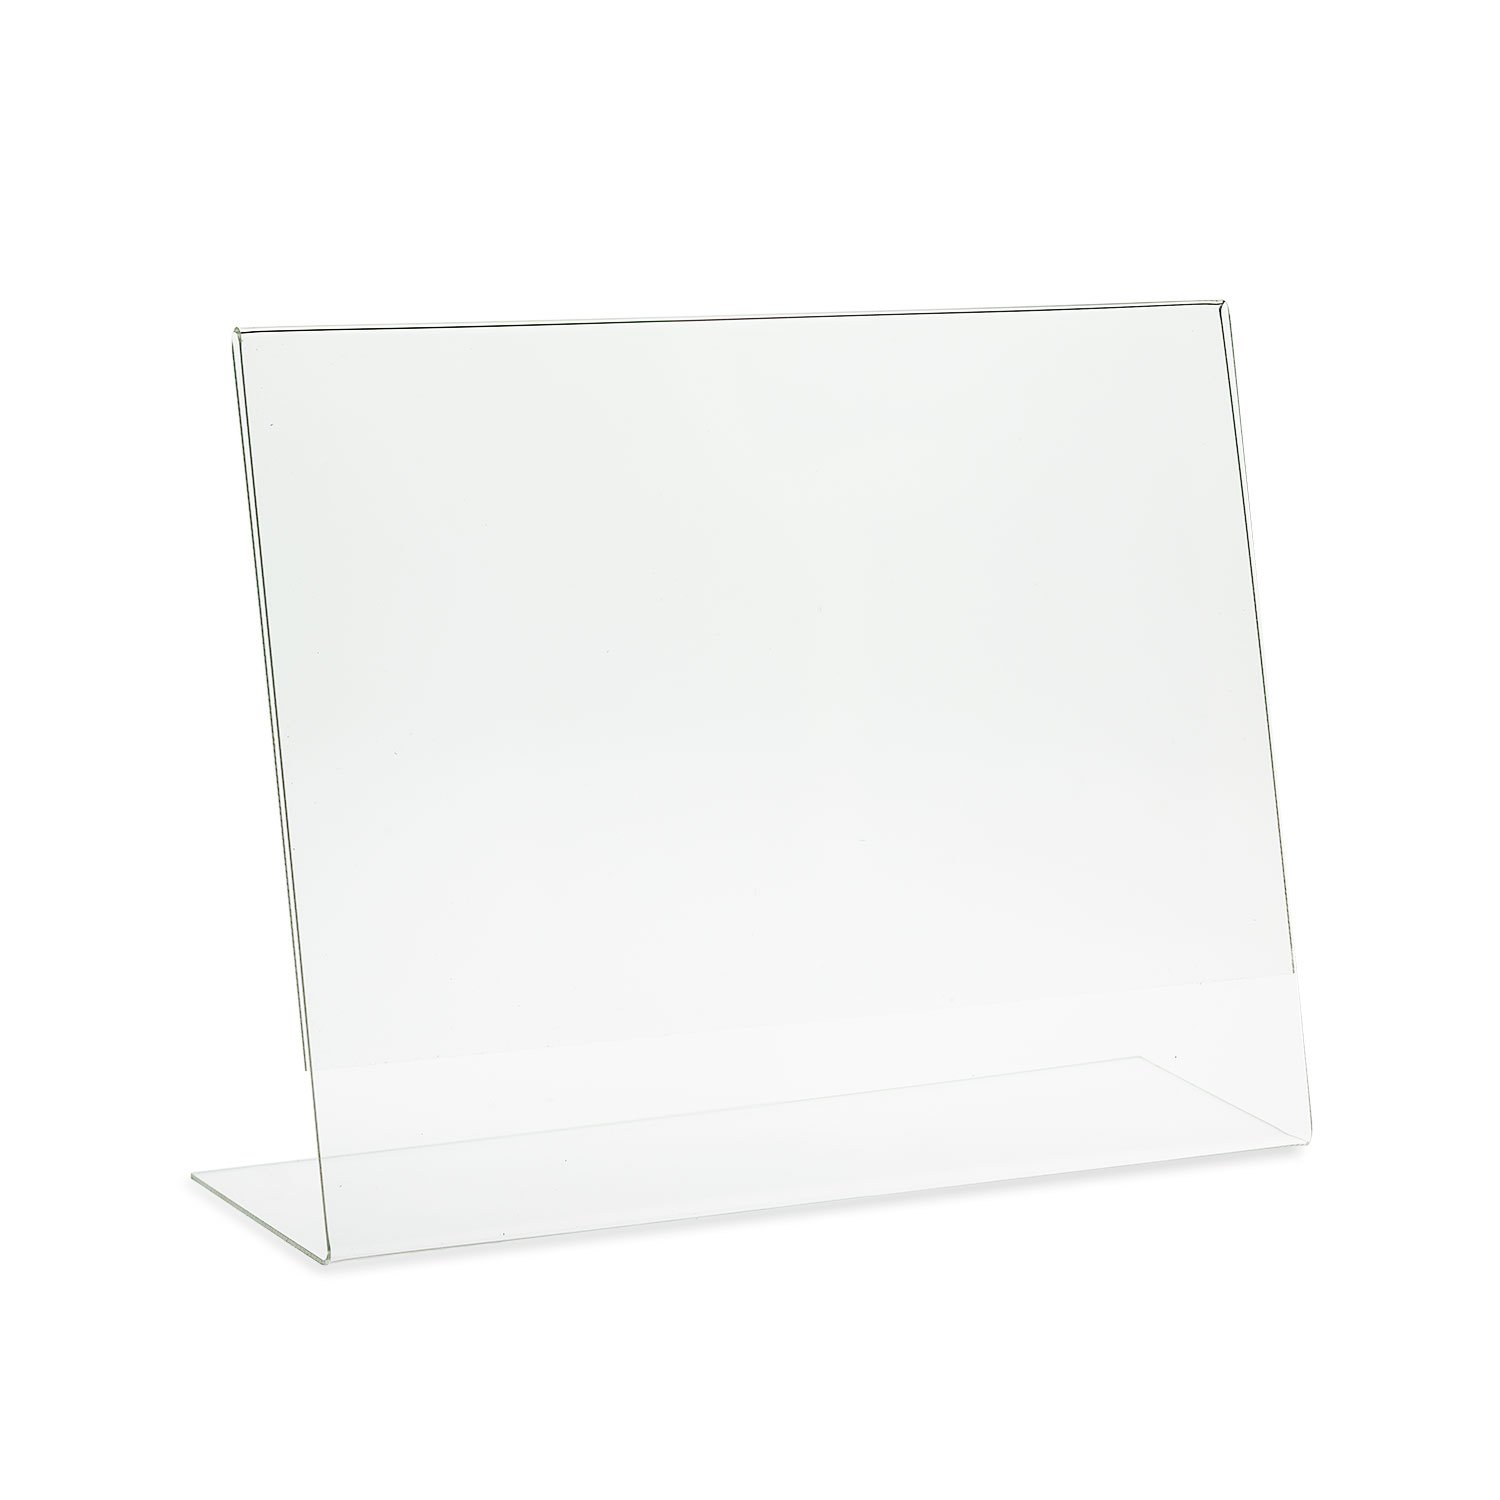 SourceOne Slanted Sign Holder - 11'' x 8 1/2'' Landscape - Clear Acrylic Ad Frame